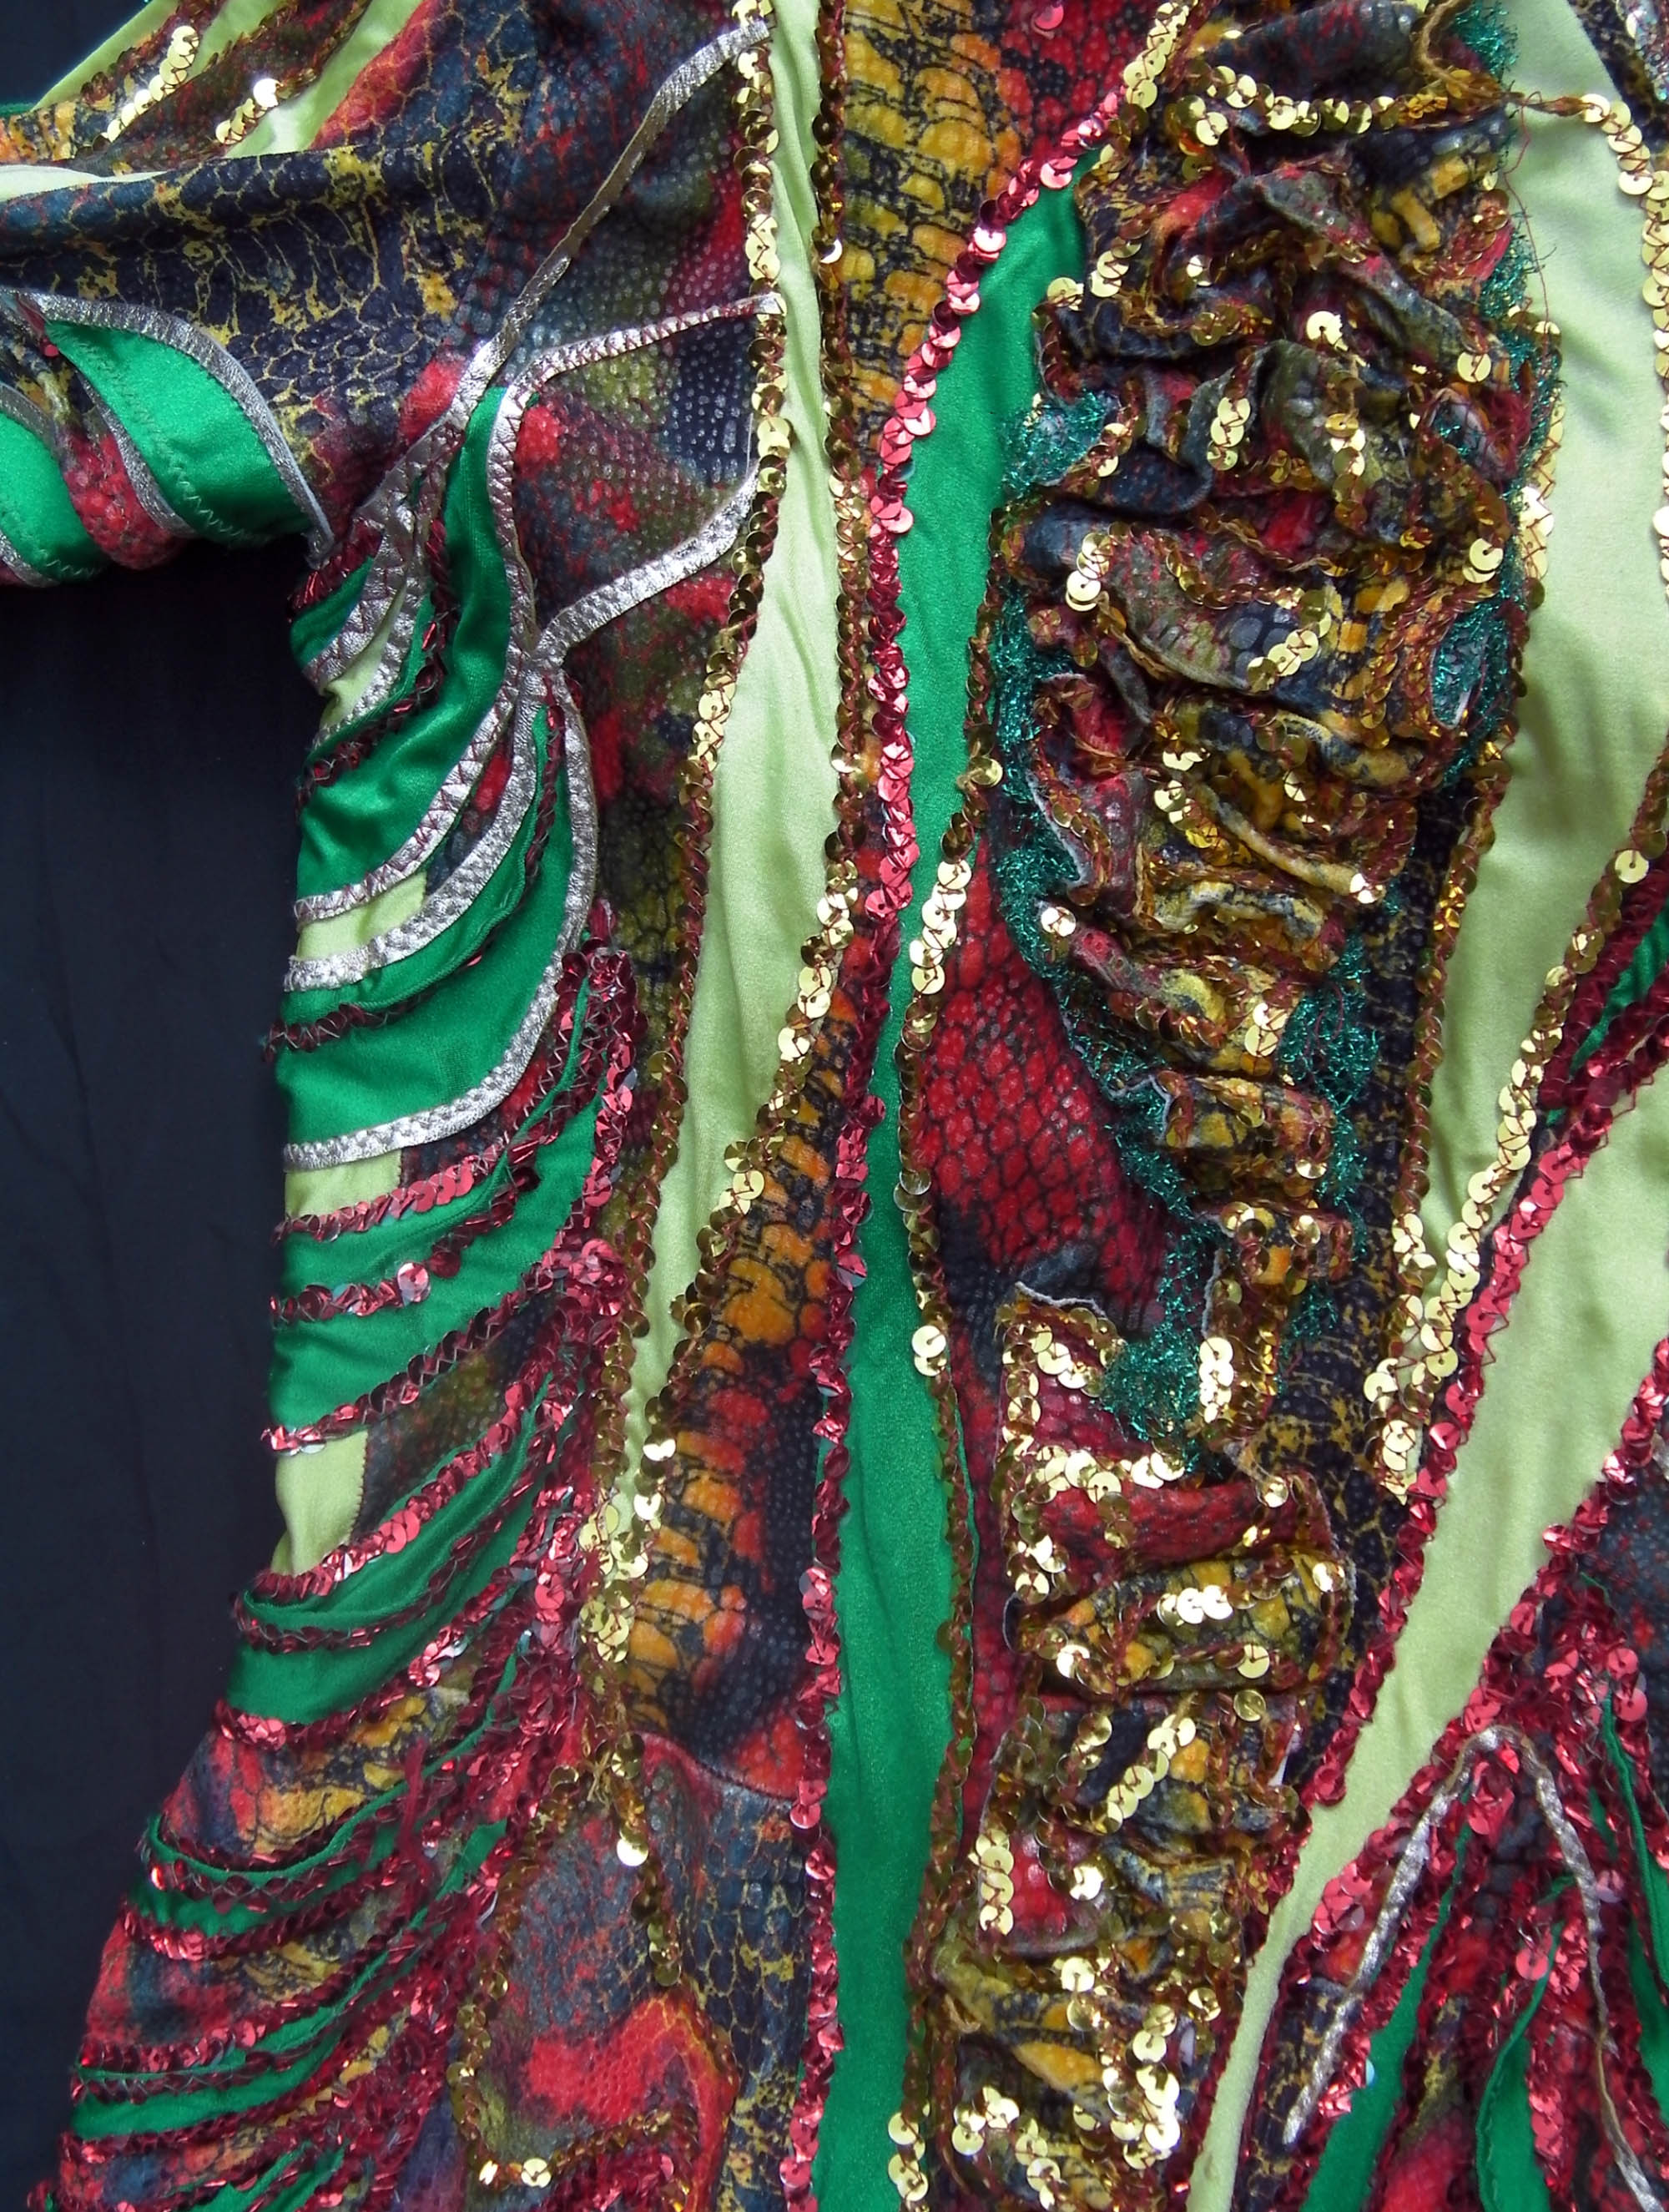 A detail from the costume 'Snake woman' from the show 'Rubicon'